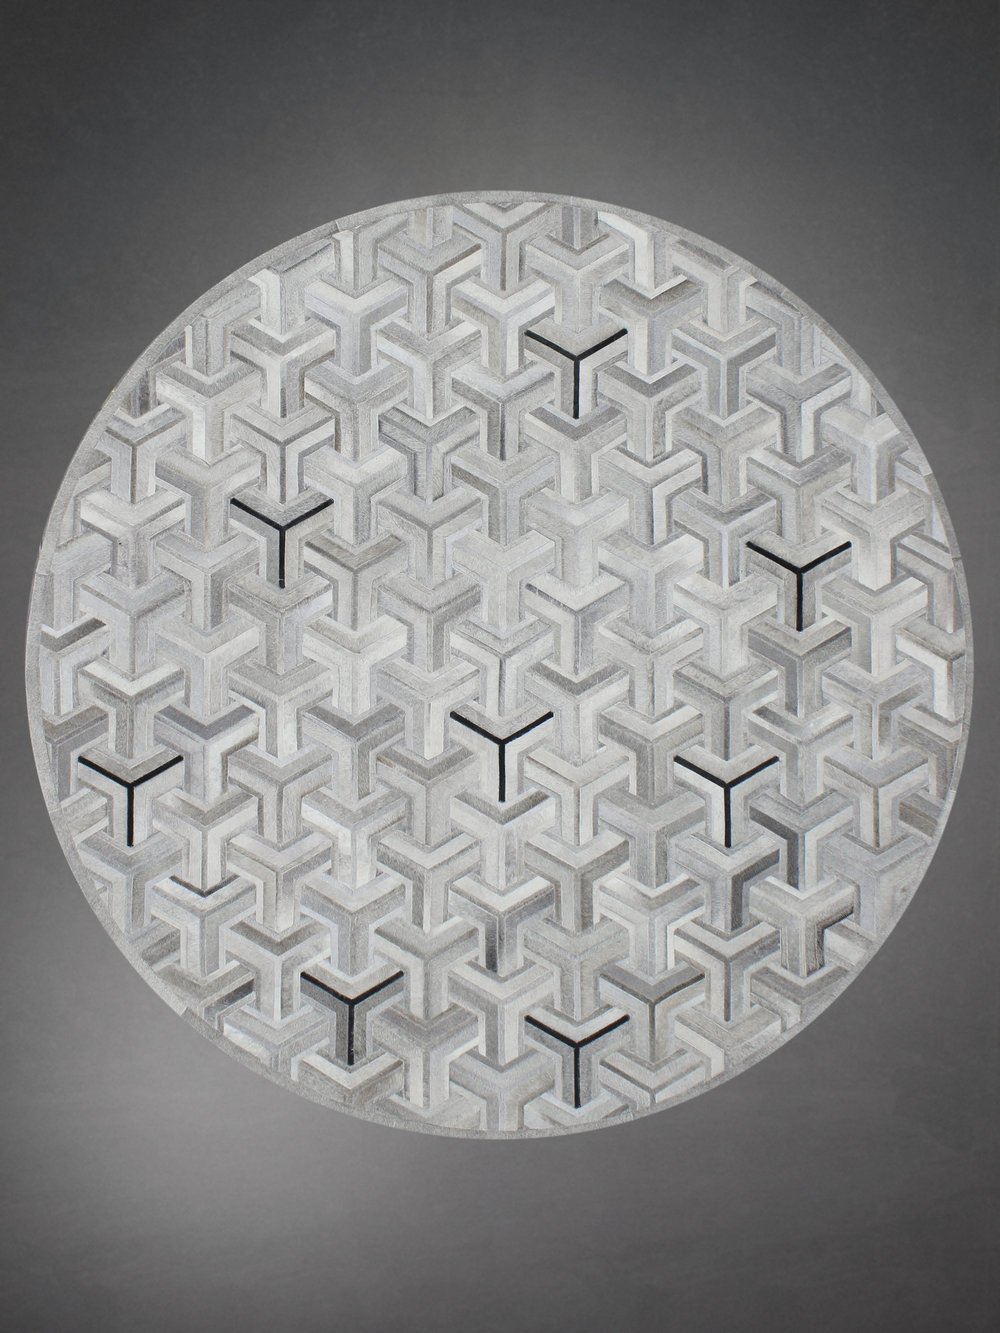 Contemporary designed fur circle rug in a geometric woven pattern in gray.